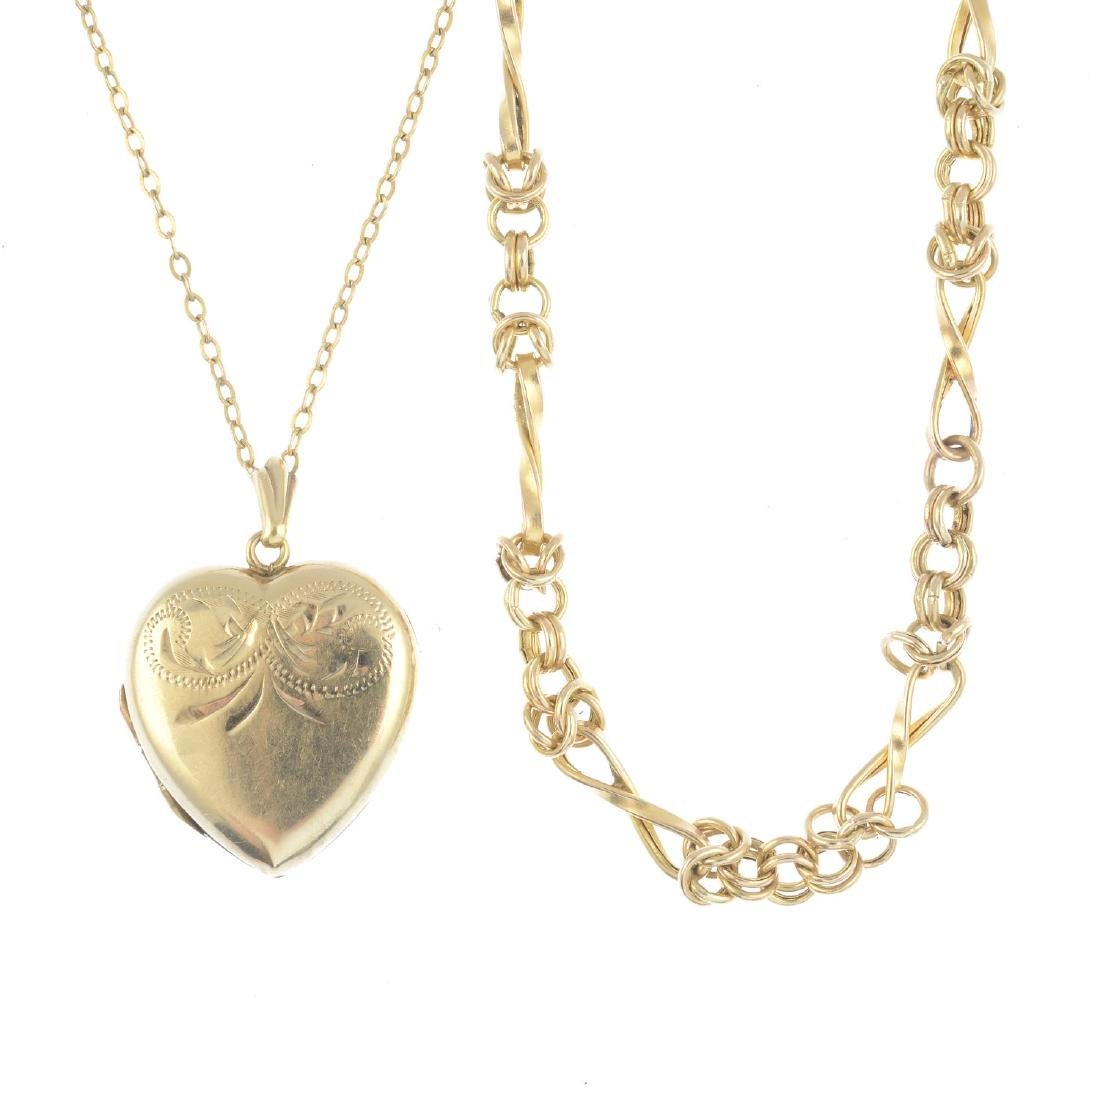 A 9ct gold locket, and two chains. The 9ct gold locket,